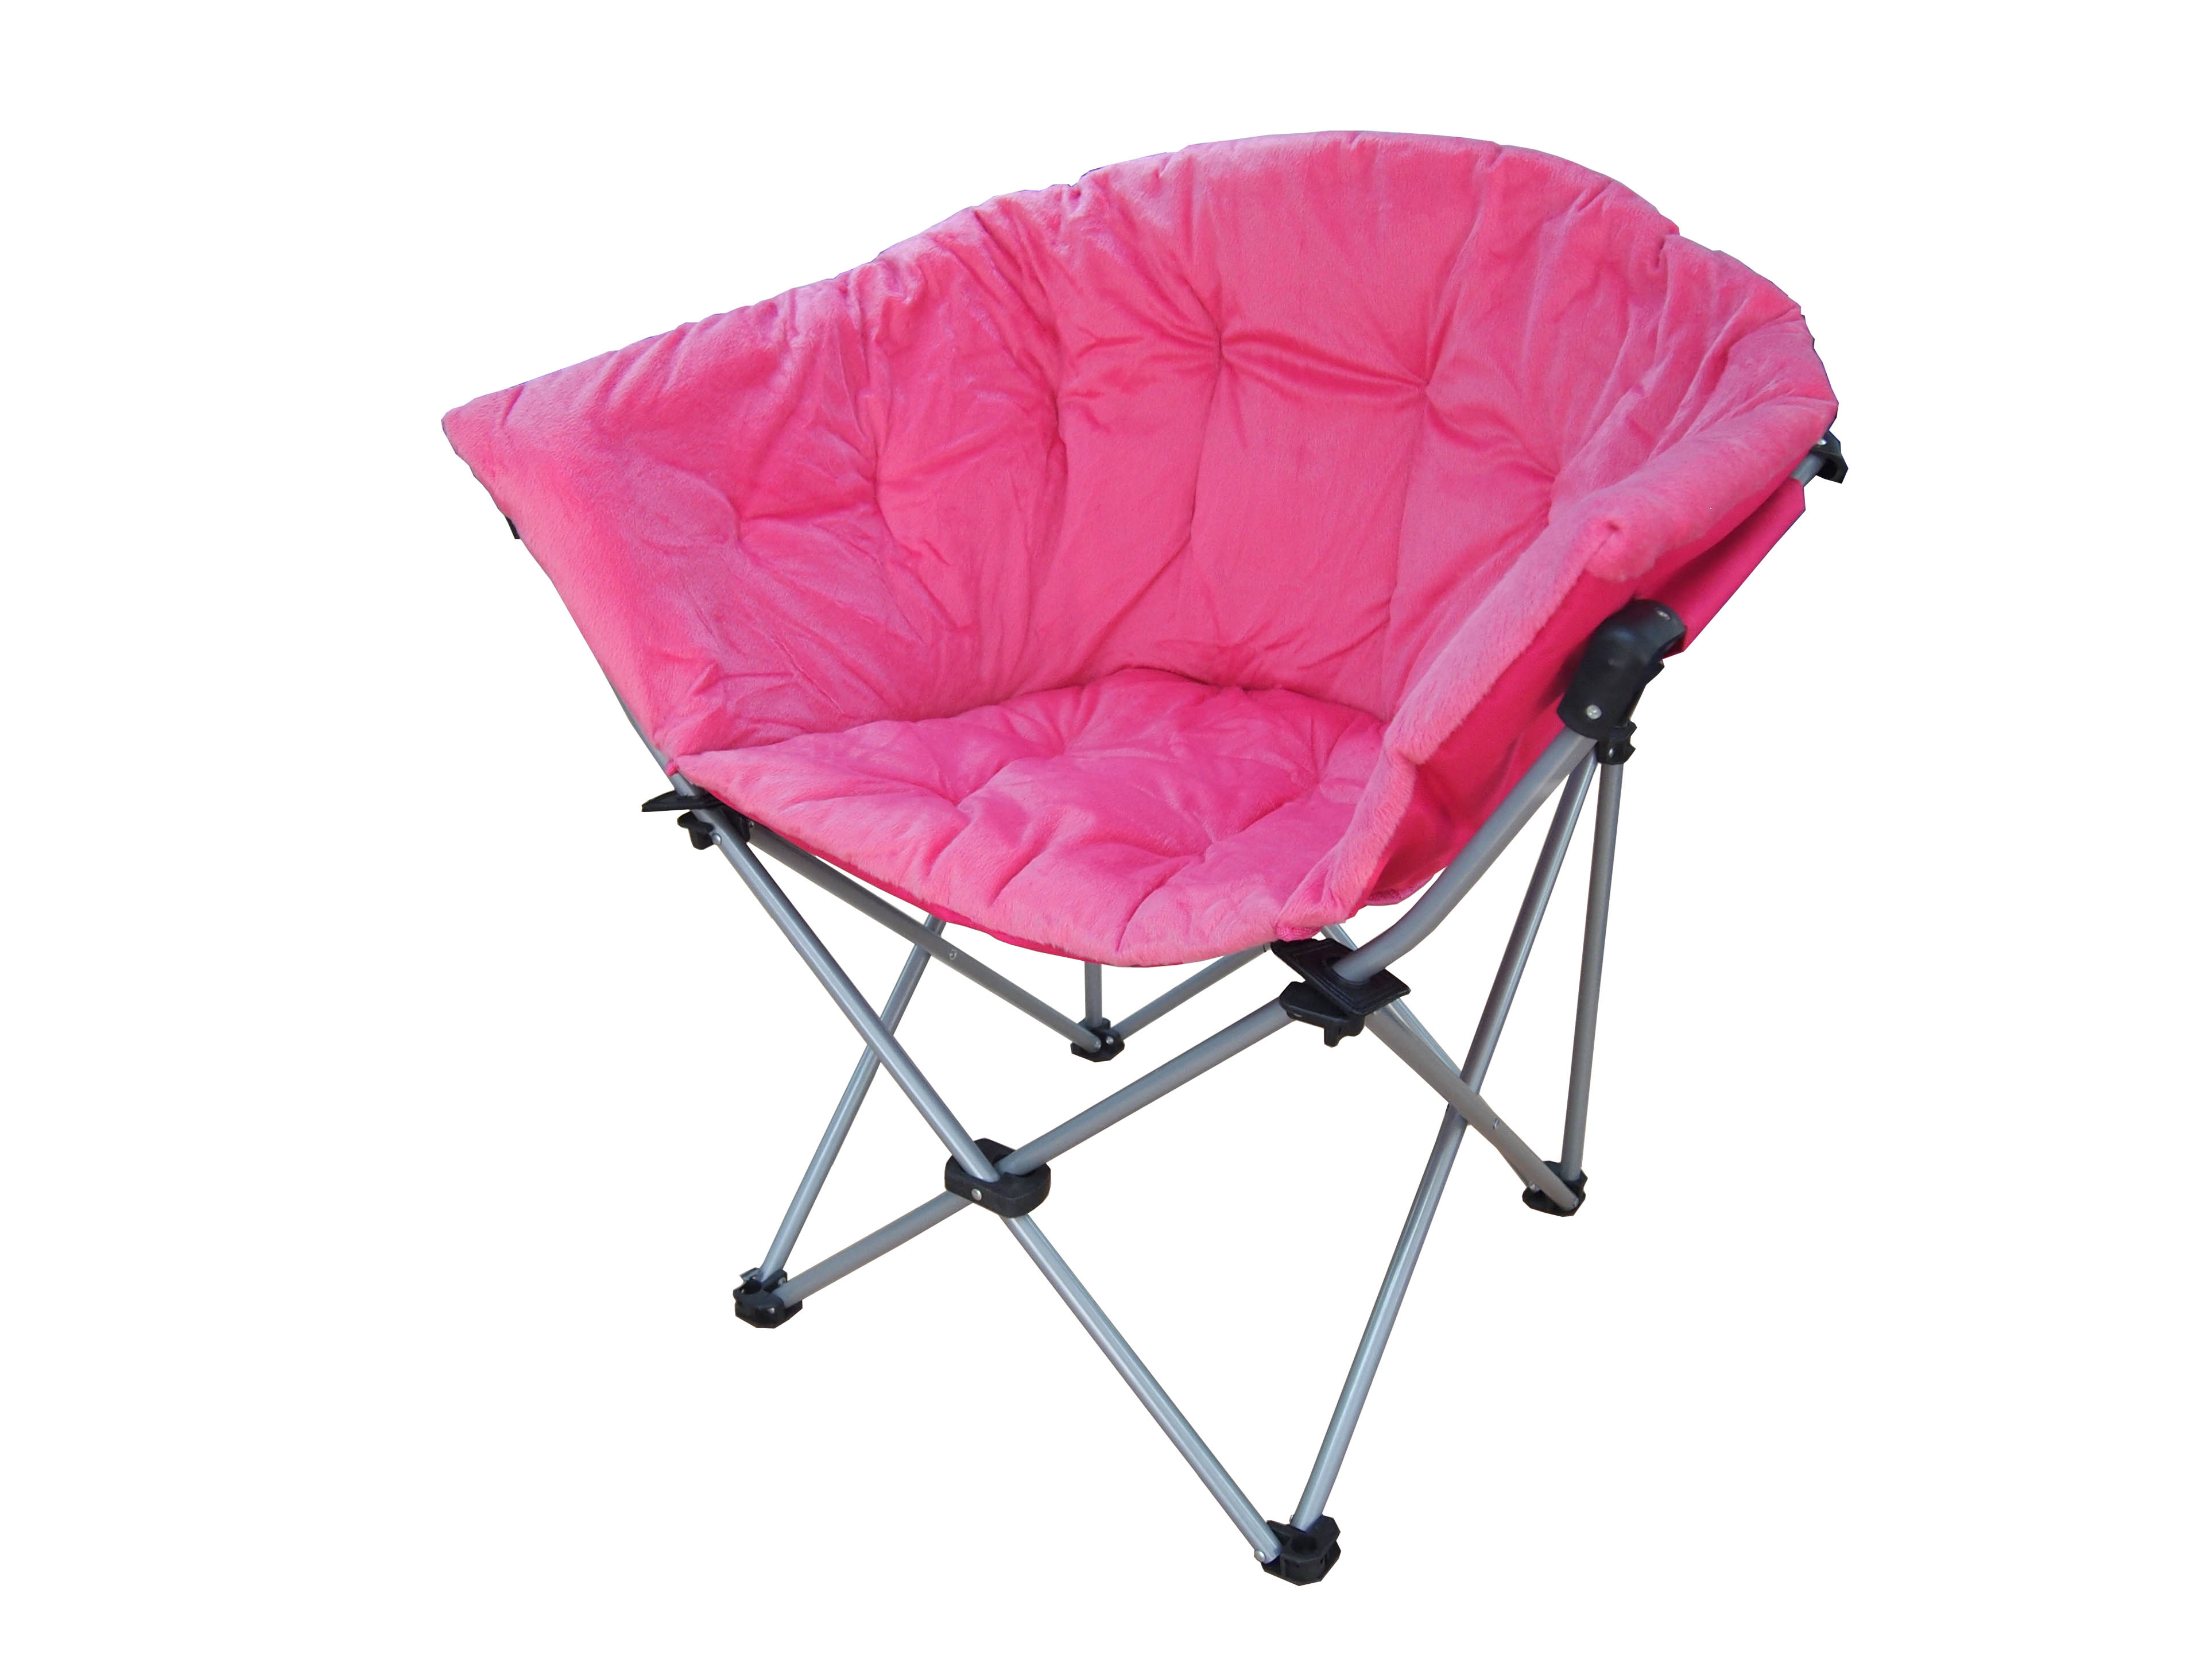 Folding Fold camping Chair Outdoor Stool Seat heavy duty black pink blue zebr